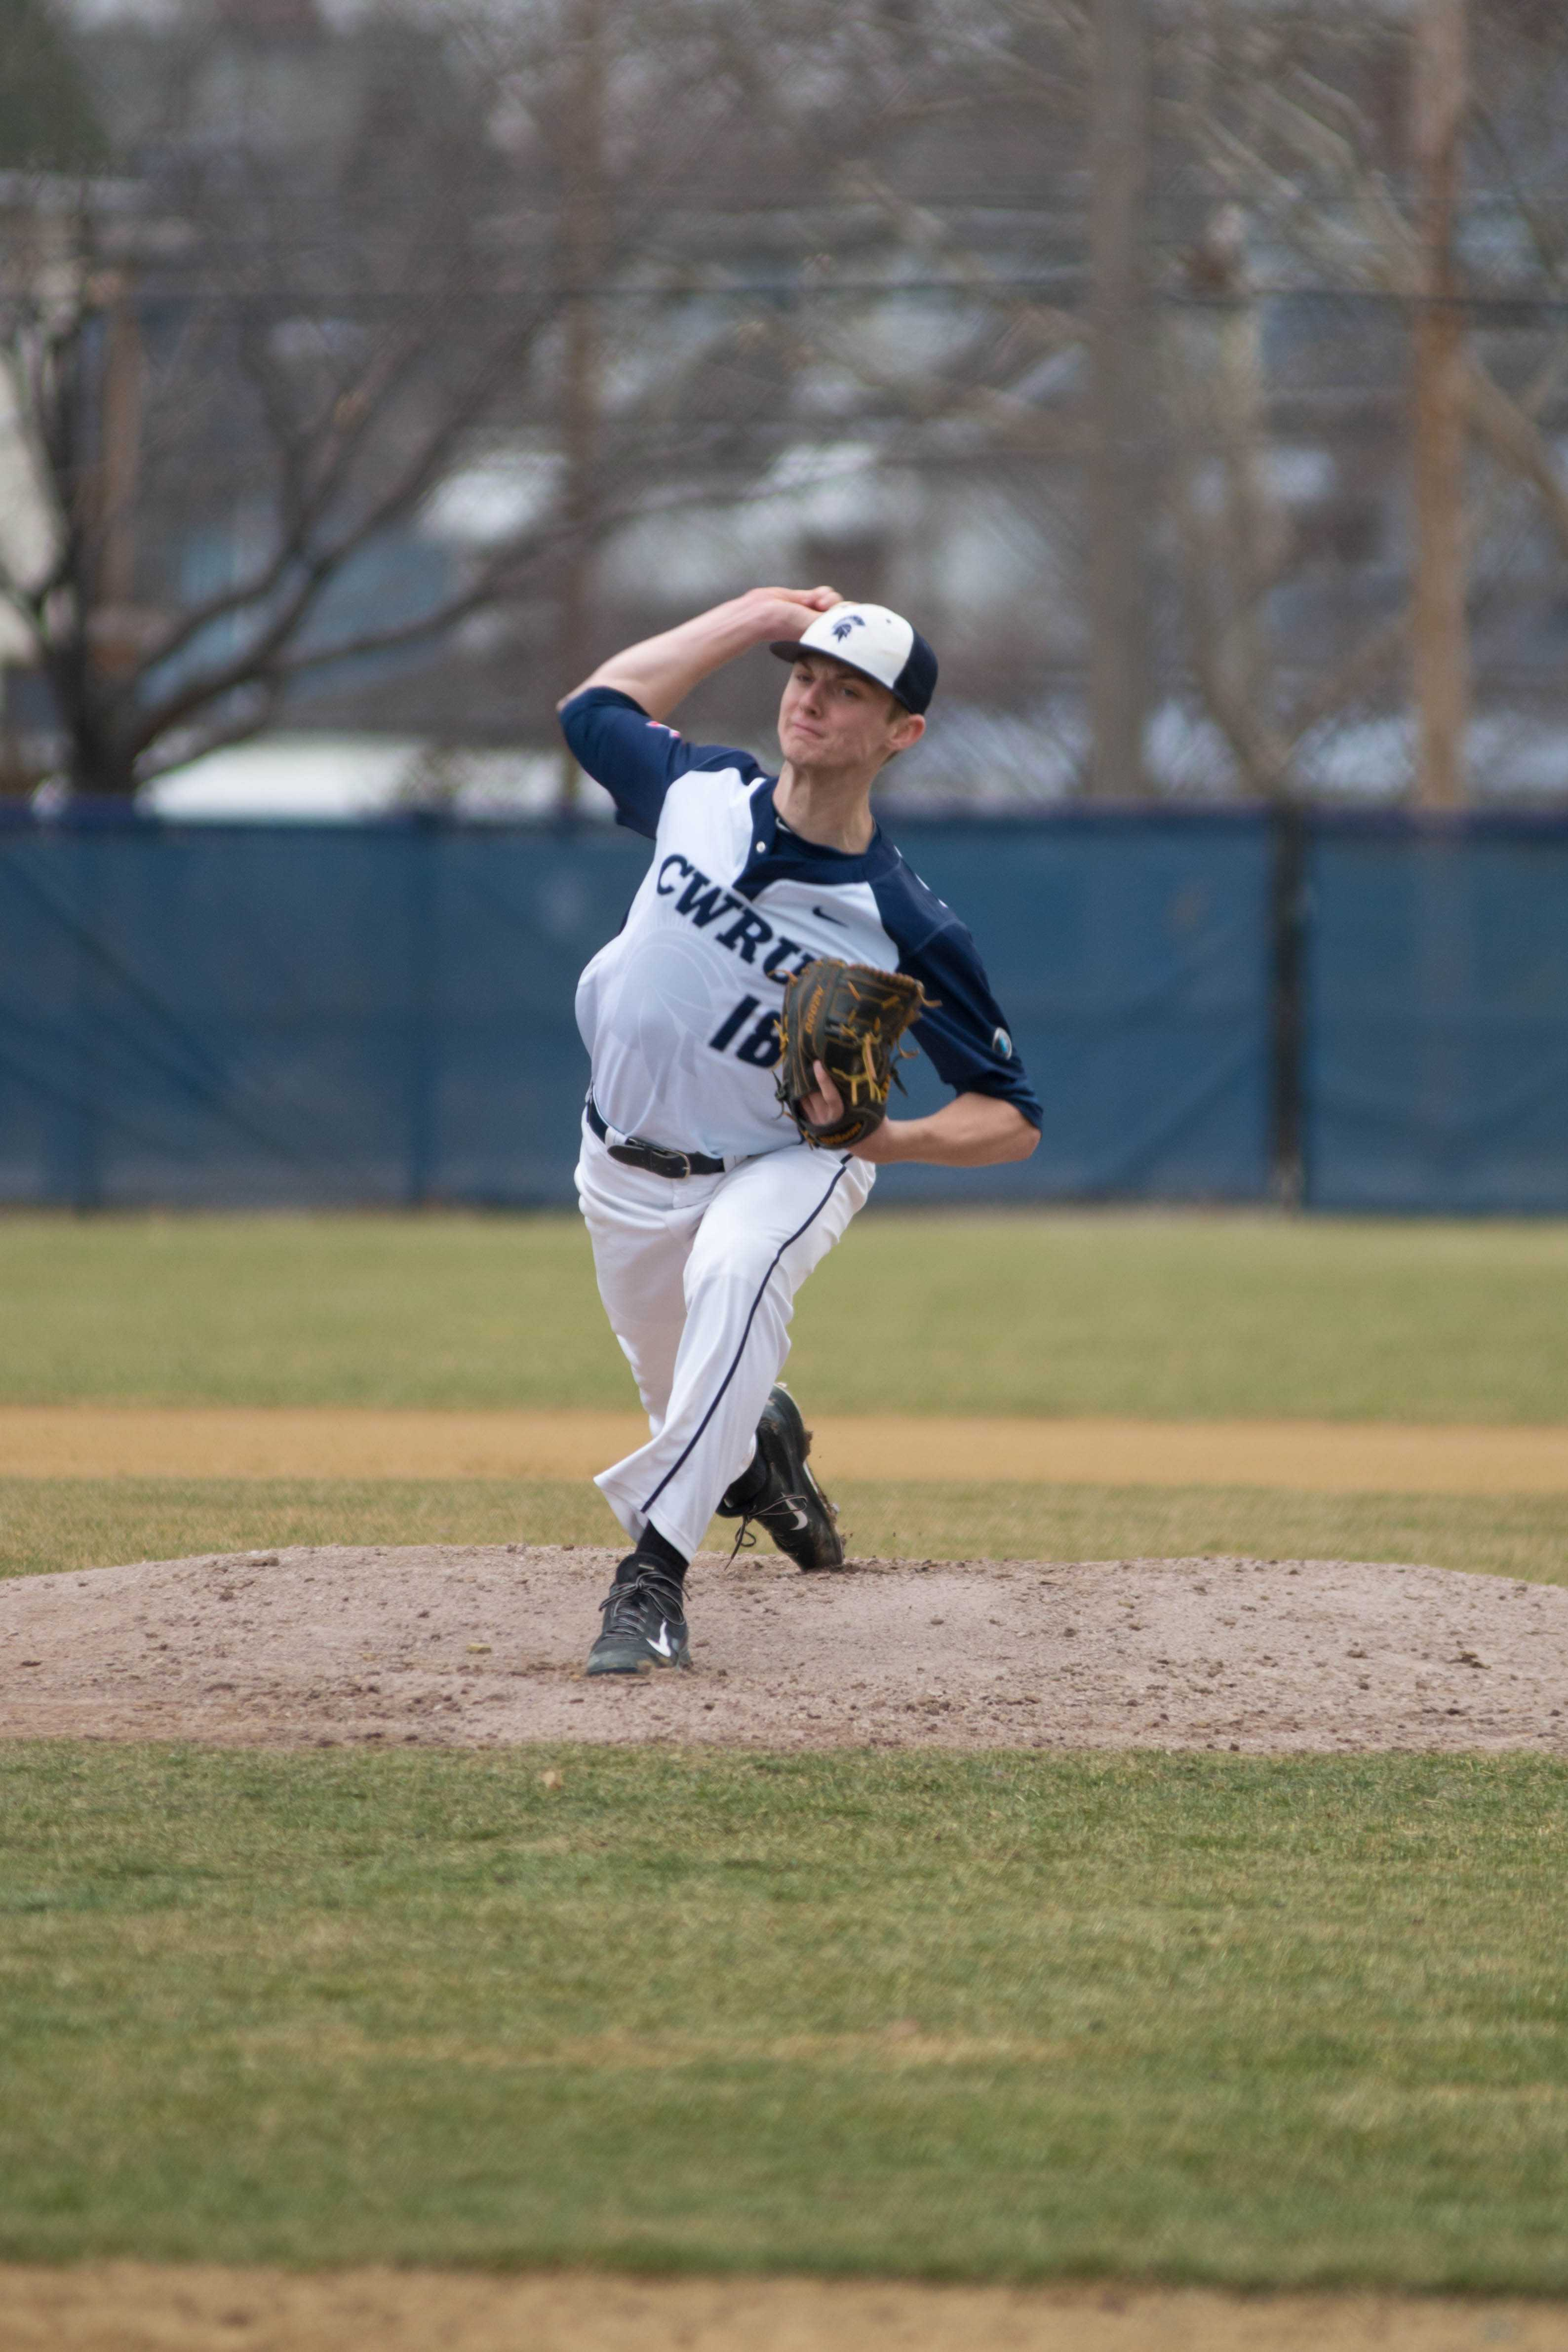 Senior Pitcher Andrew Rossman prepares to pitch during the Spartan's game against Otterbein last week.